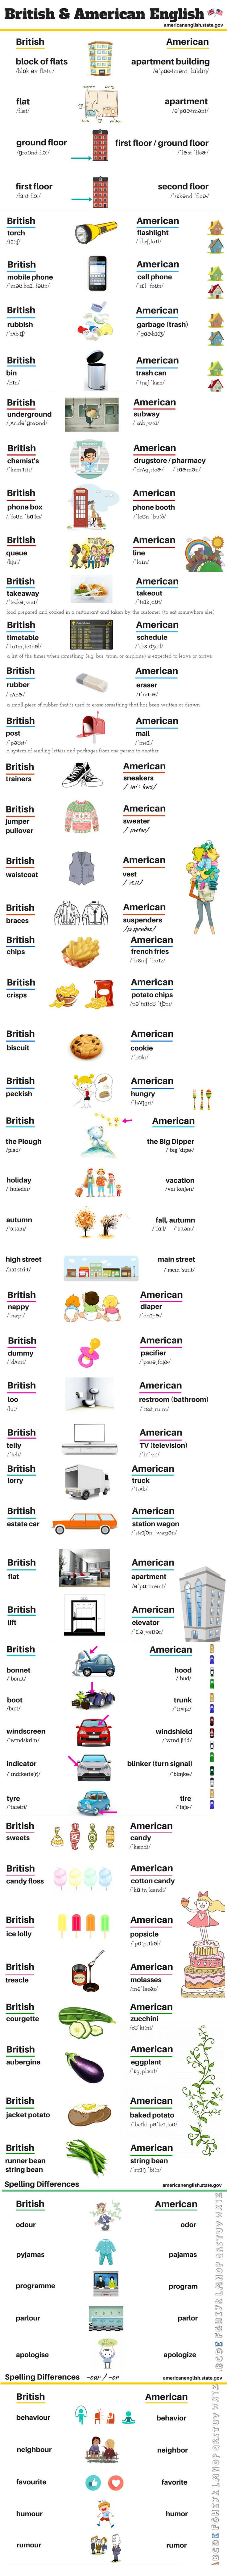 British and American English. Englisch lernen | Kolumbus Sprachreisen | #KSRSprachreisen https://www.kolumbus-sprachreisen.de/